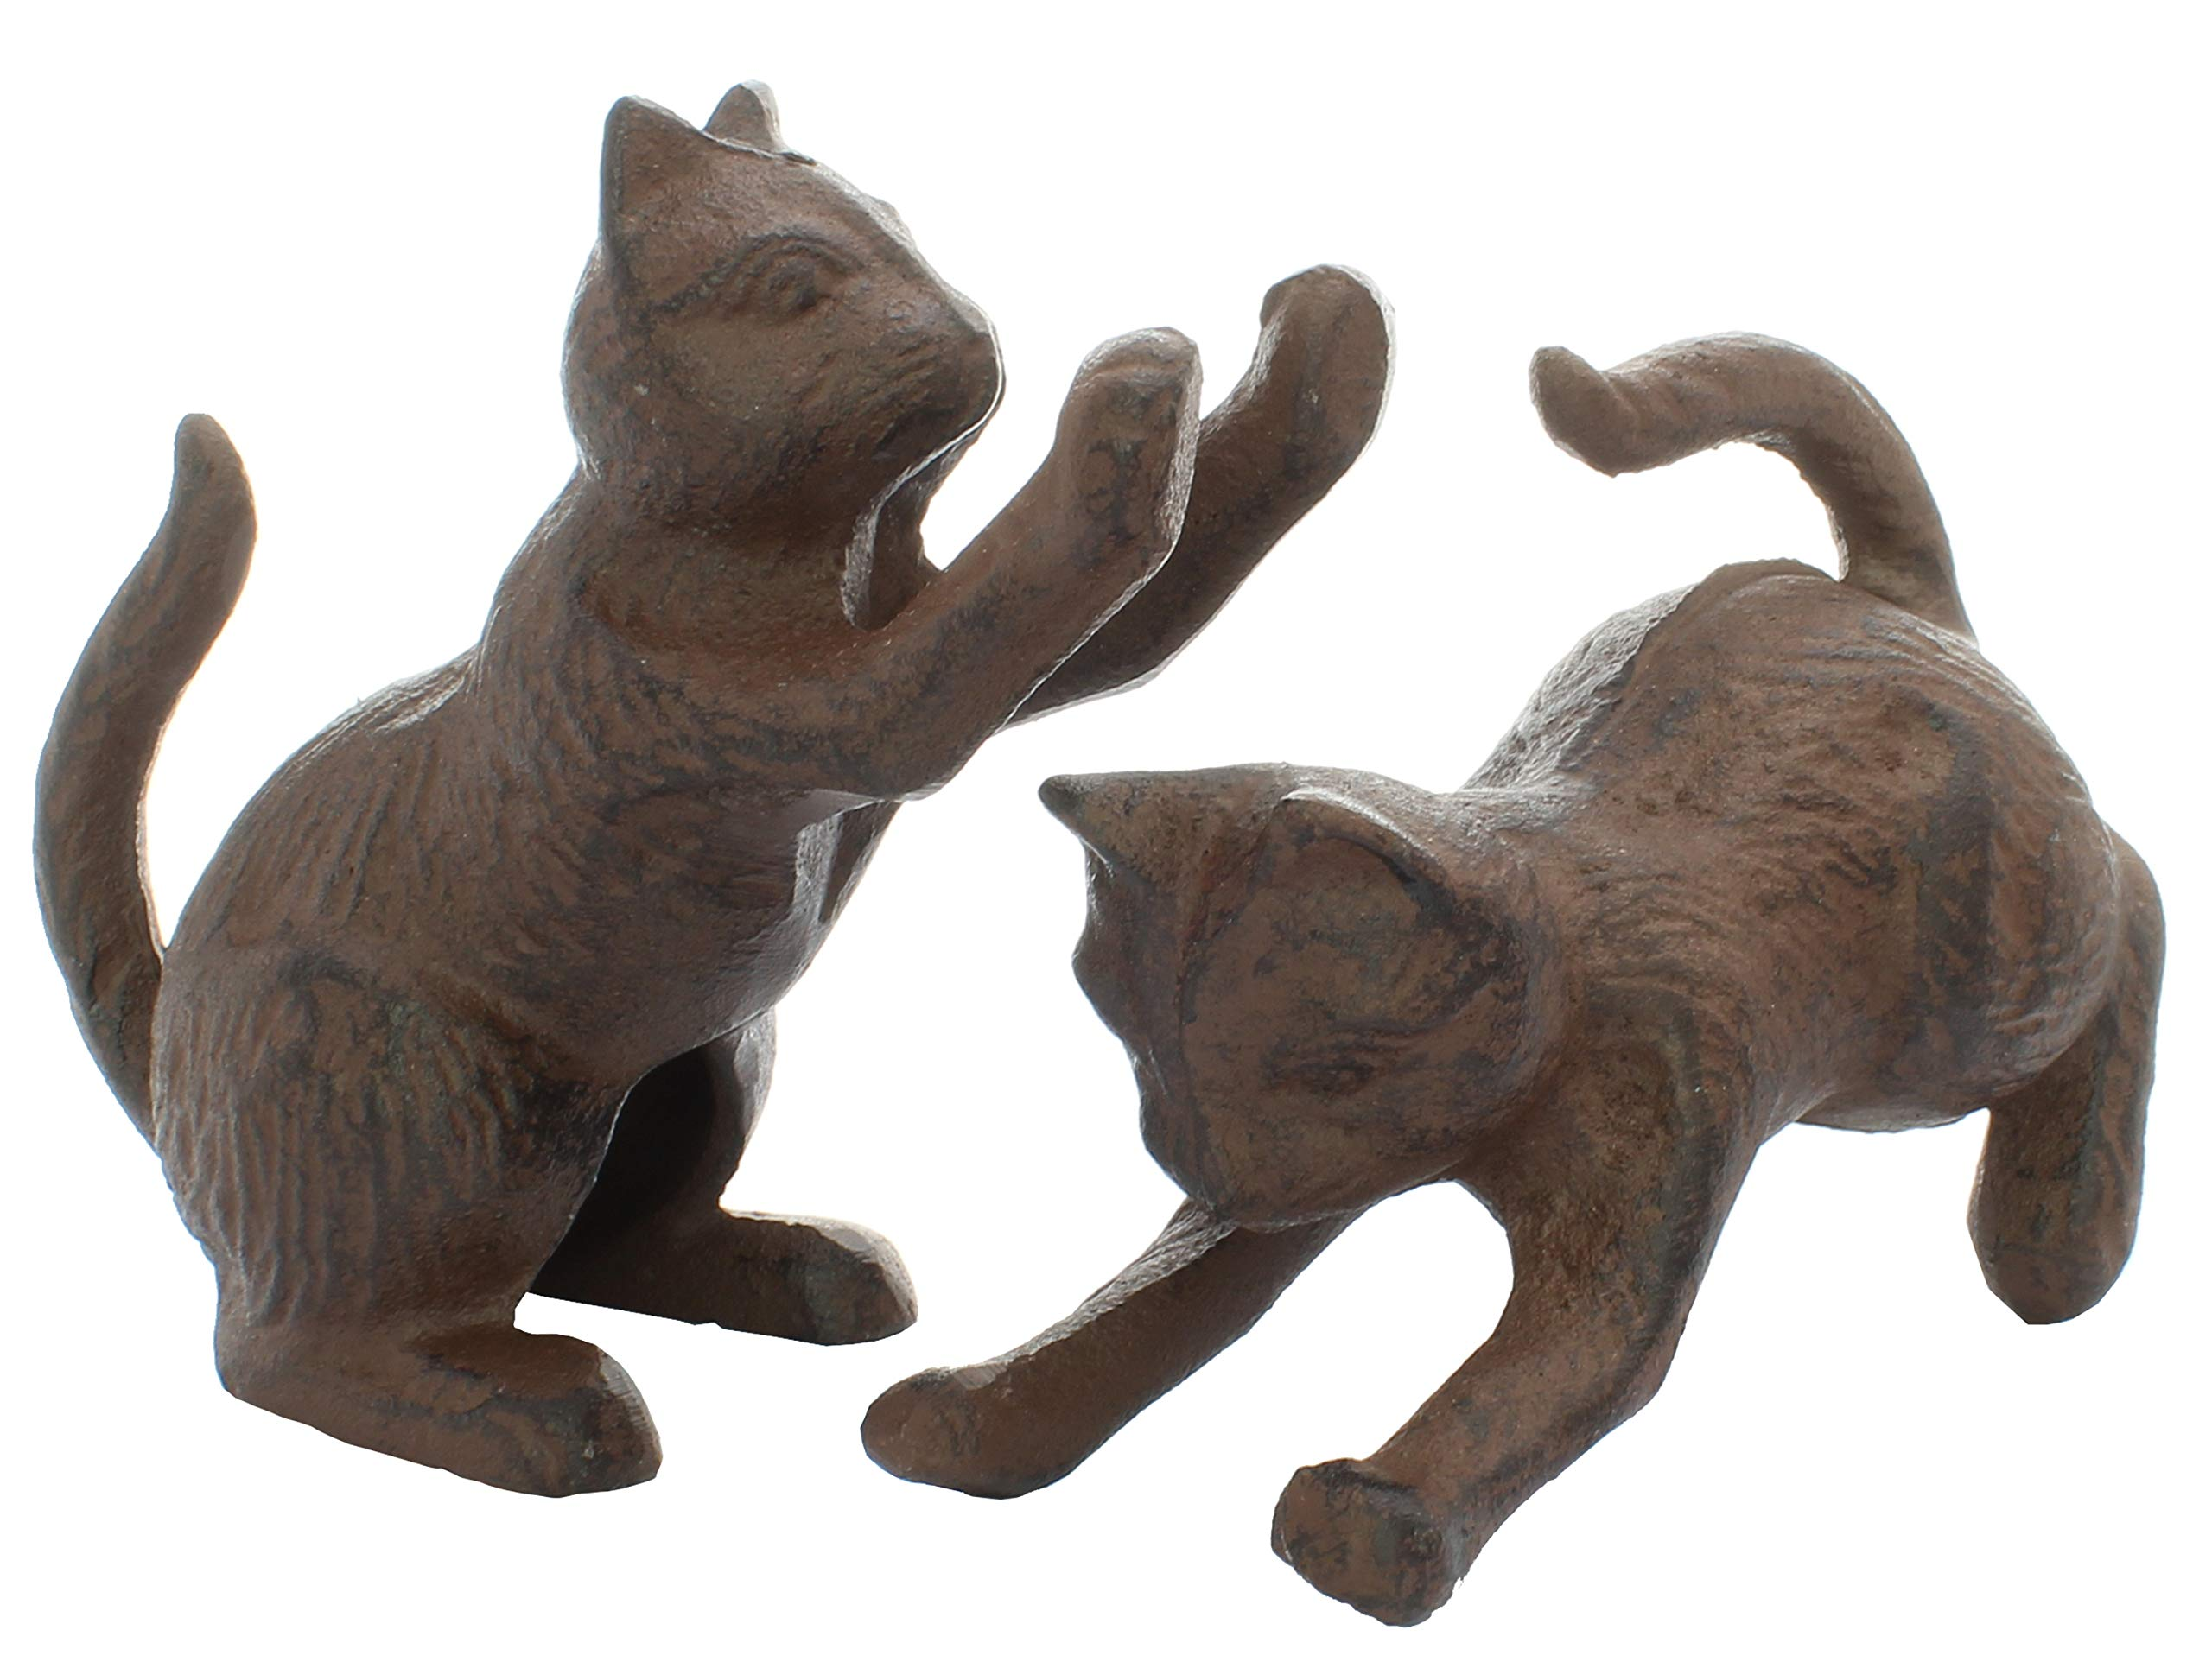 2 Pack Cast Iron Cat Book Ends Or Door Stop Decorative Rustic Look for Any Book Case Stop Your Bedroom Bath and Exterior Doors in Style Vintage Brown Color Book Stopper Cute Door Stopper Cat Figurine